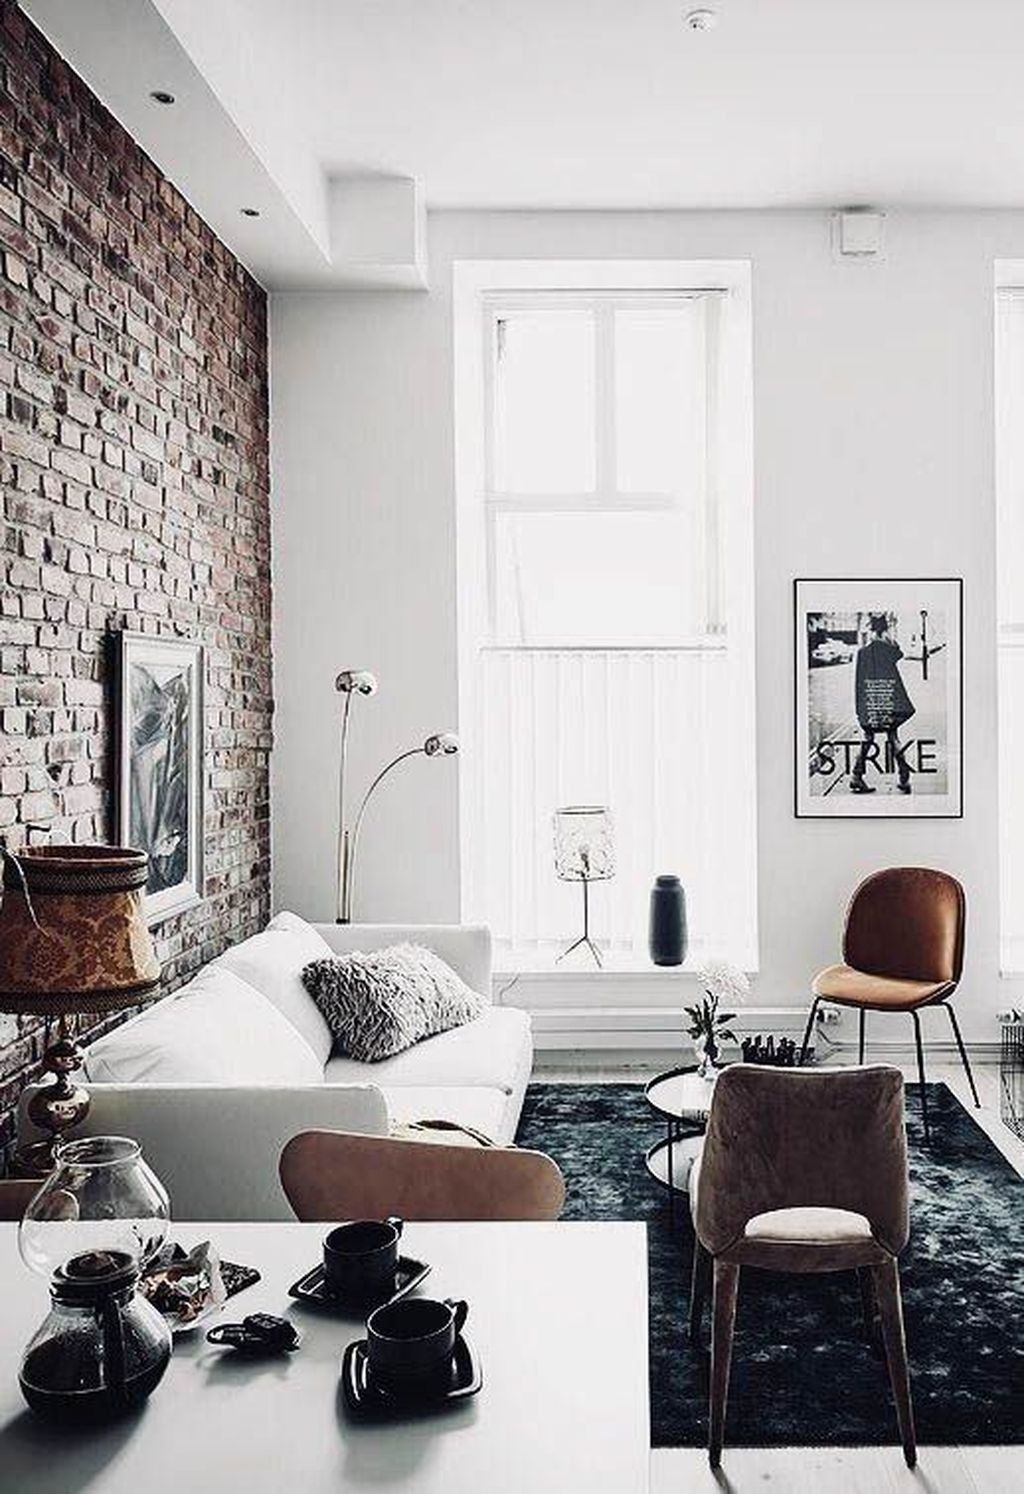 Lighting And Furniture From The Best Uk Interior Designers Www Delightfull Eu Visit Us For In Brick Living Room Apartment Interior Brick Wall Living Room